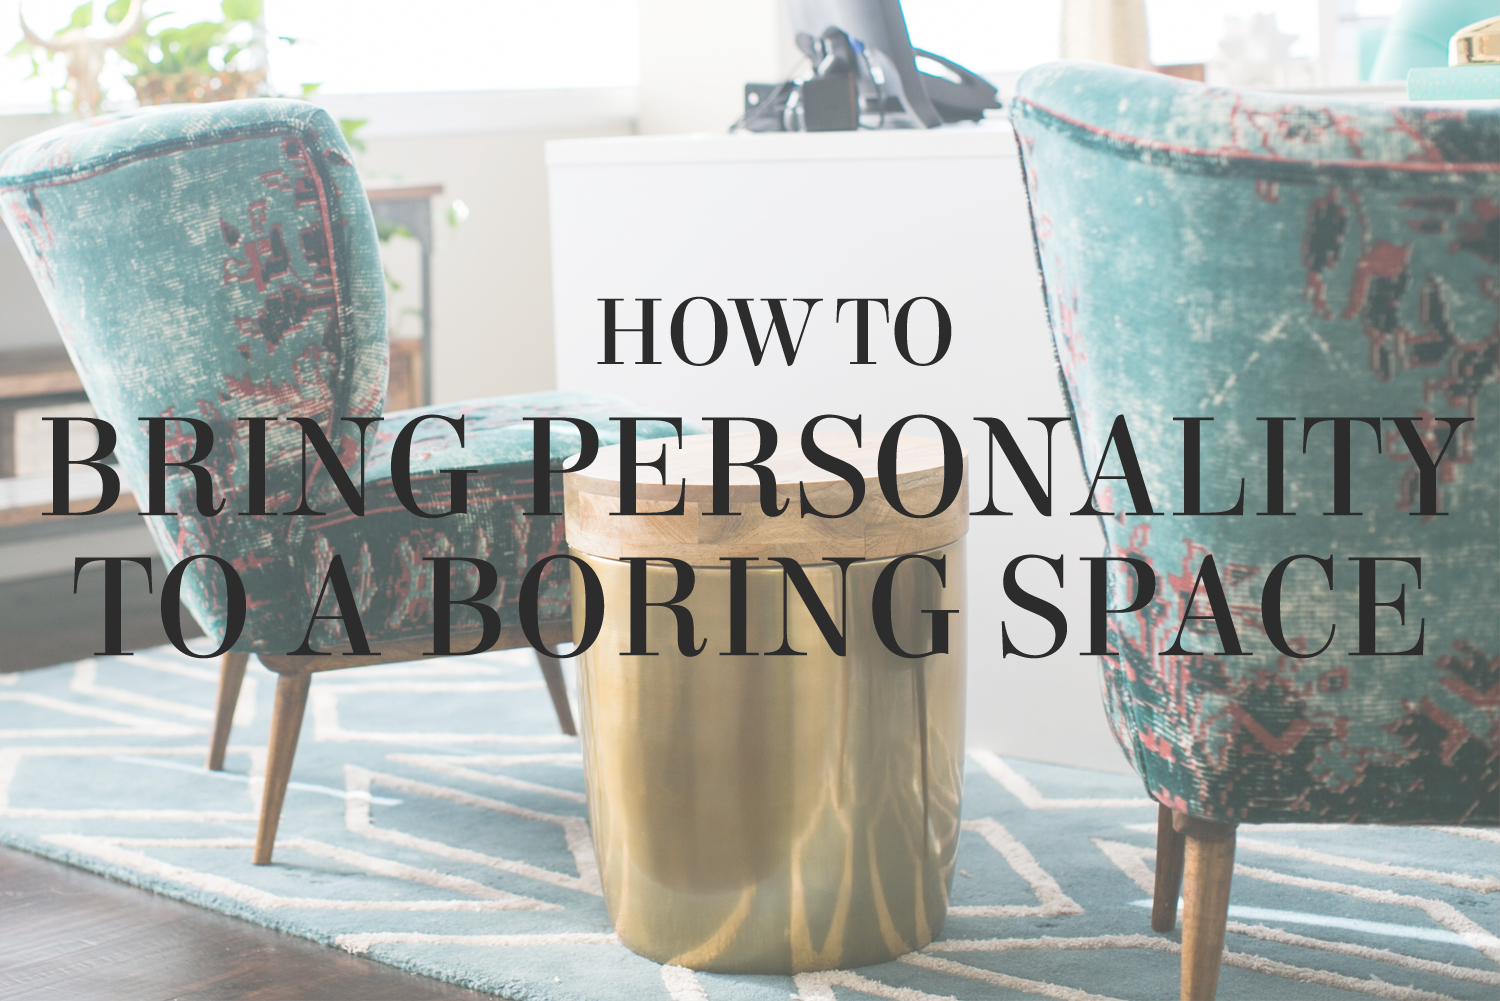 How to Bring Personality to a Boring Space | Interior Design Tips from Lesley Myrick